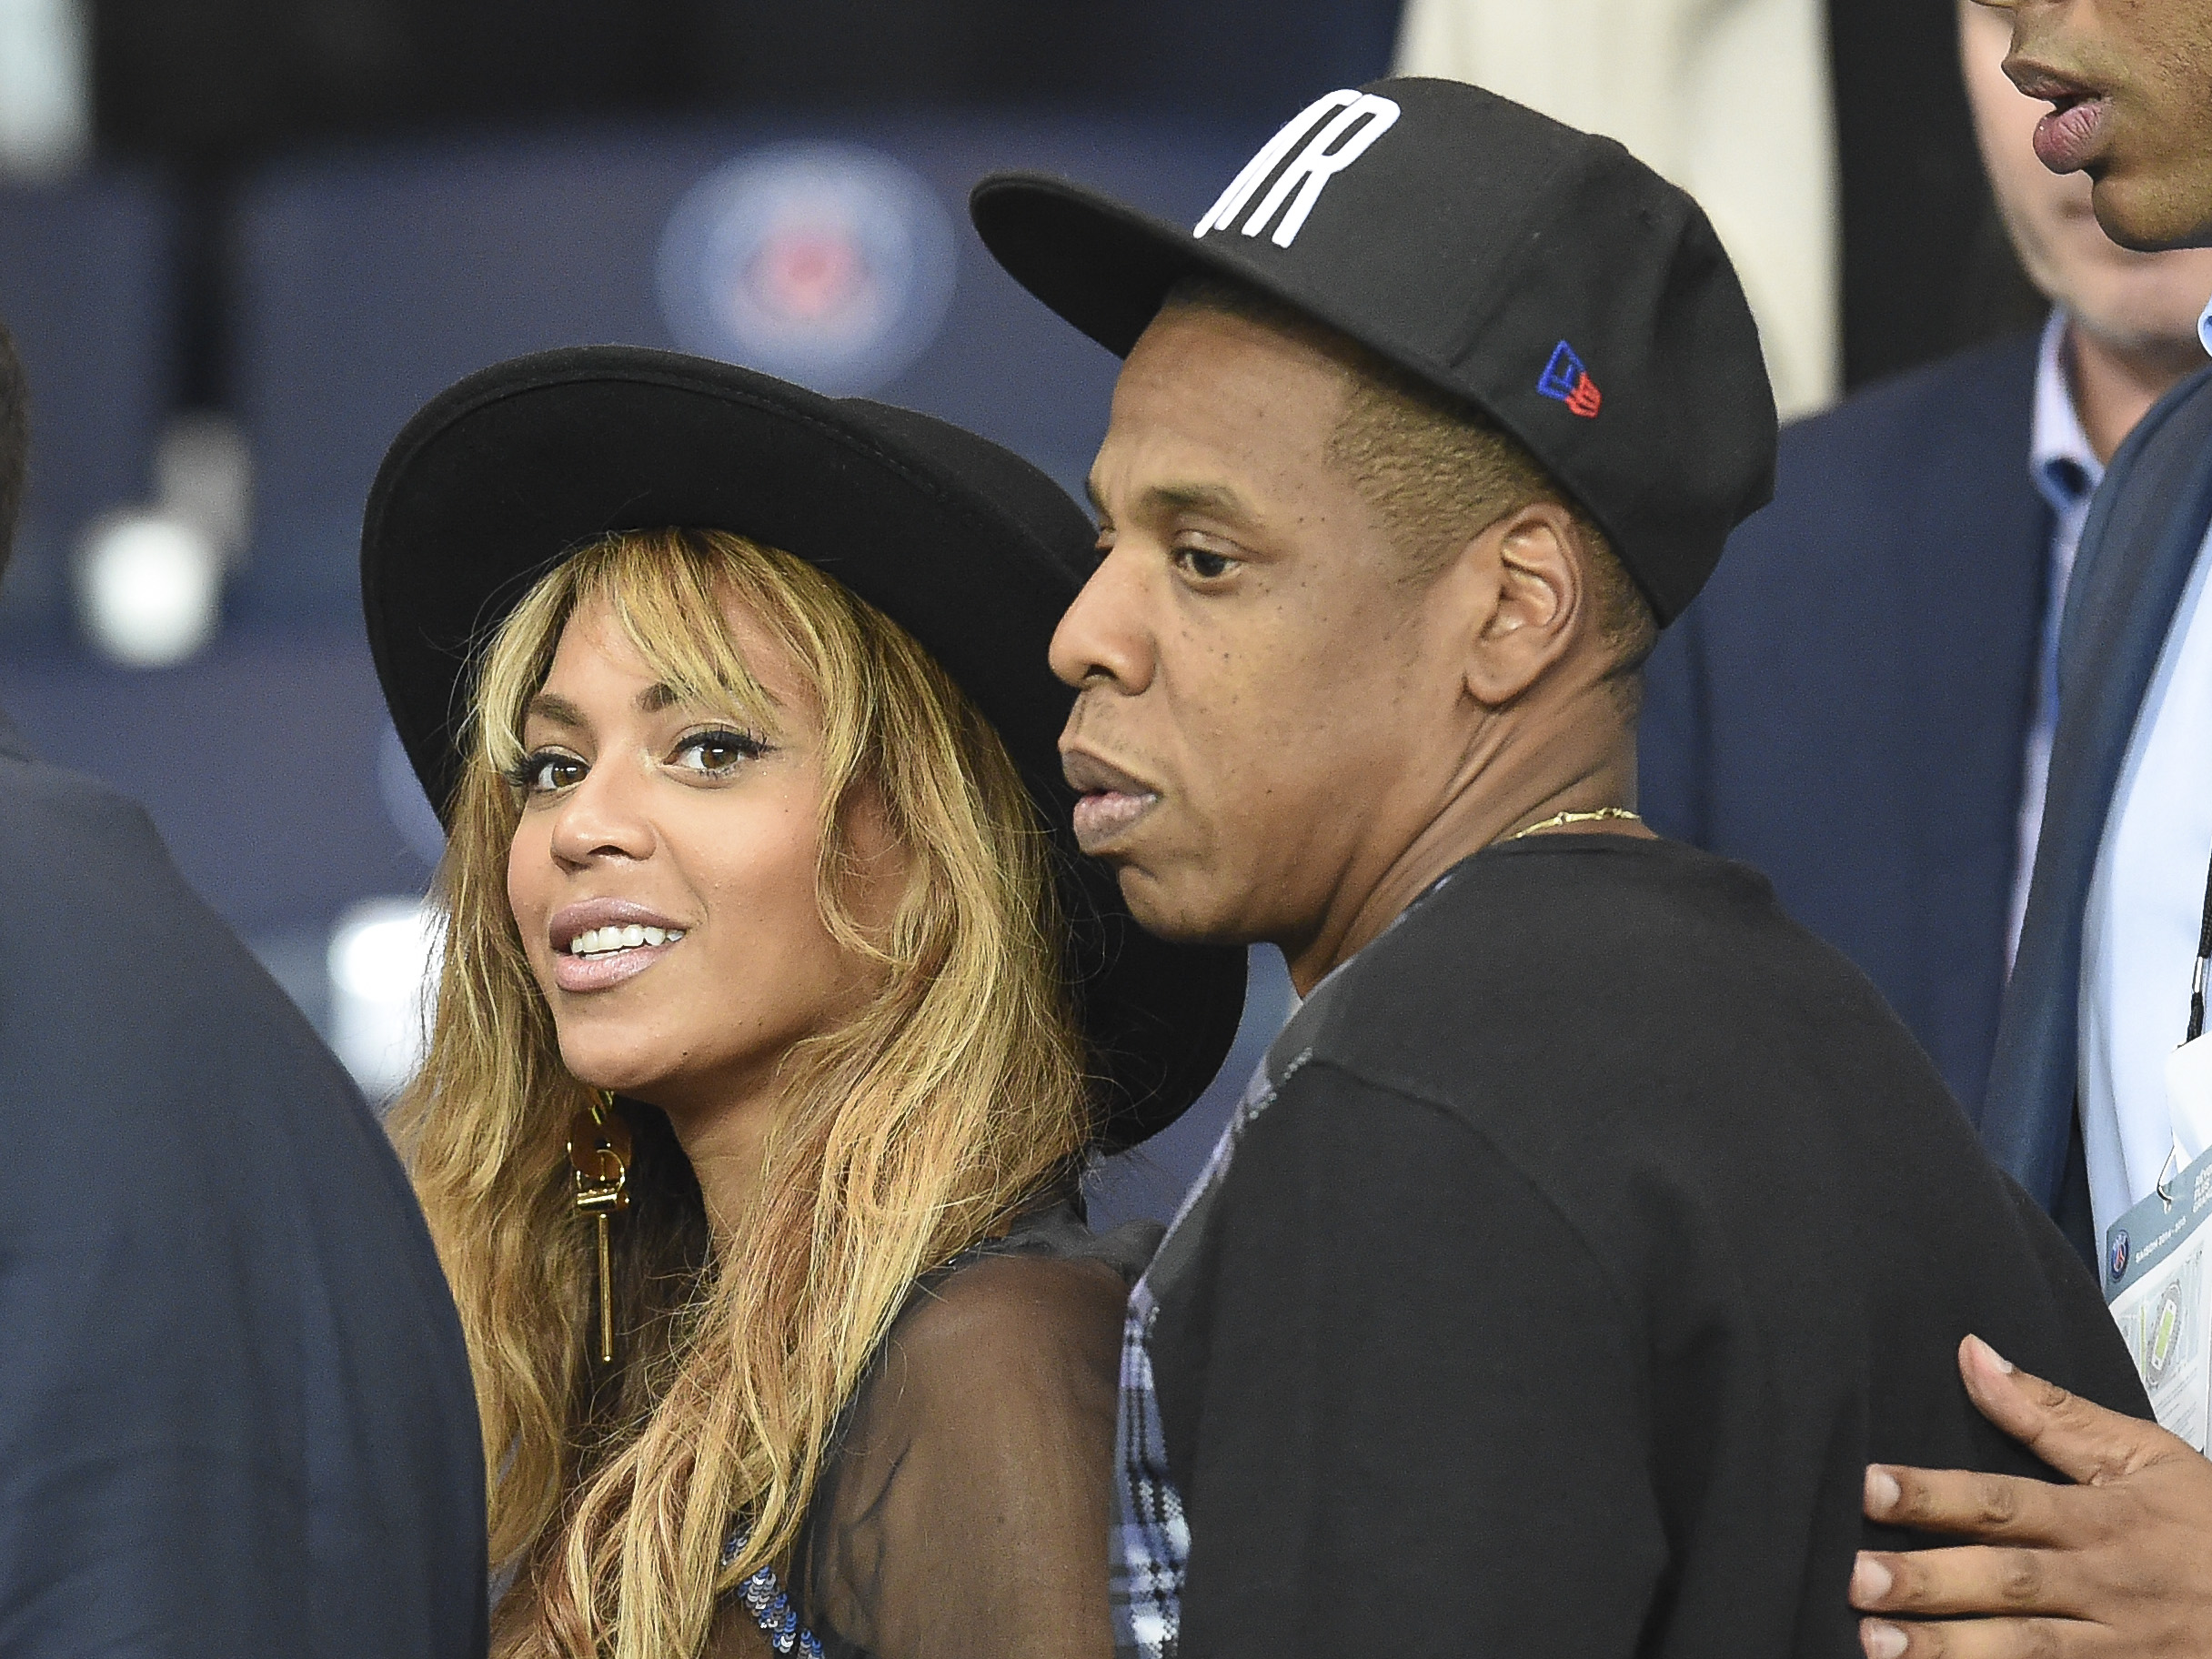 Celebrities in attendance for the Paris Saint-Germain F.C. vs Barcelona F.C. football match in Paris  Featuring: Beyonce, Jay-Z Where: Paris, Parc des Princes, France When: 30 Sep 2014 Credit: WENN.com  **Not available for publication in France, Netherlands, Belgium, Spain, Italy**